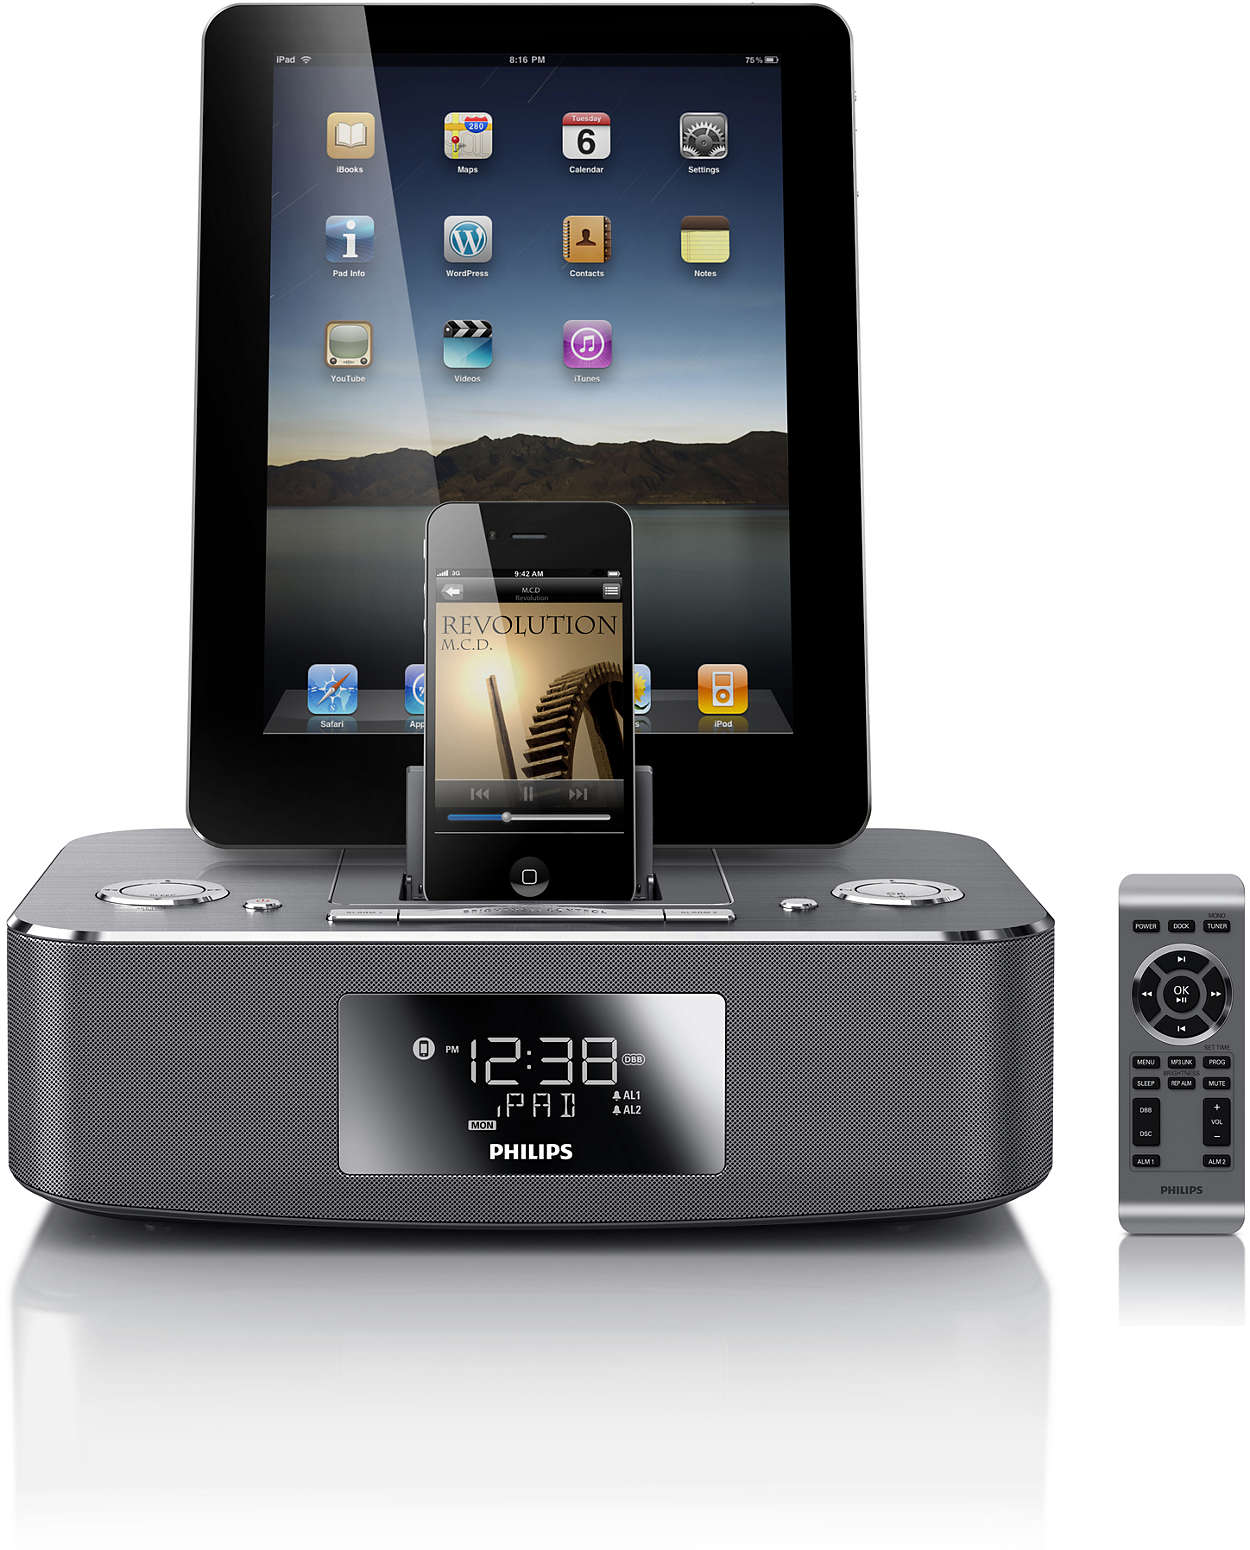 docking station for iPod/iPhone/iPad DC390/98 | Philips